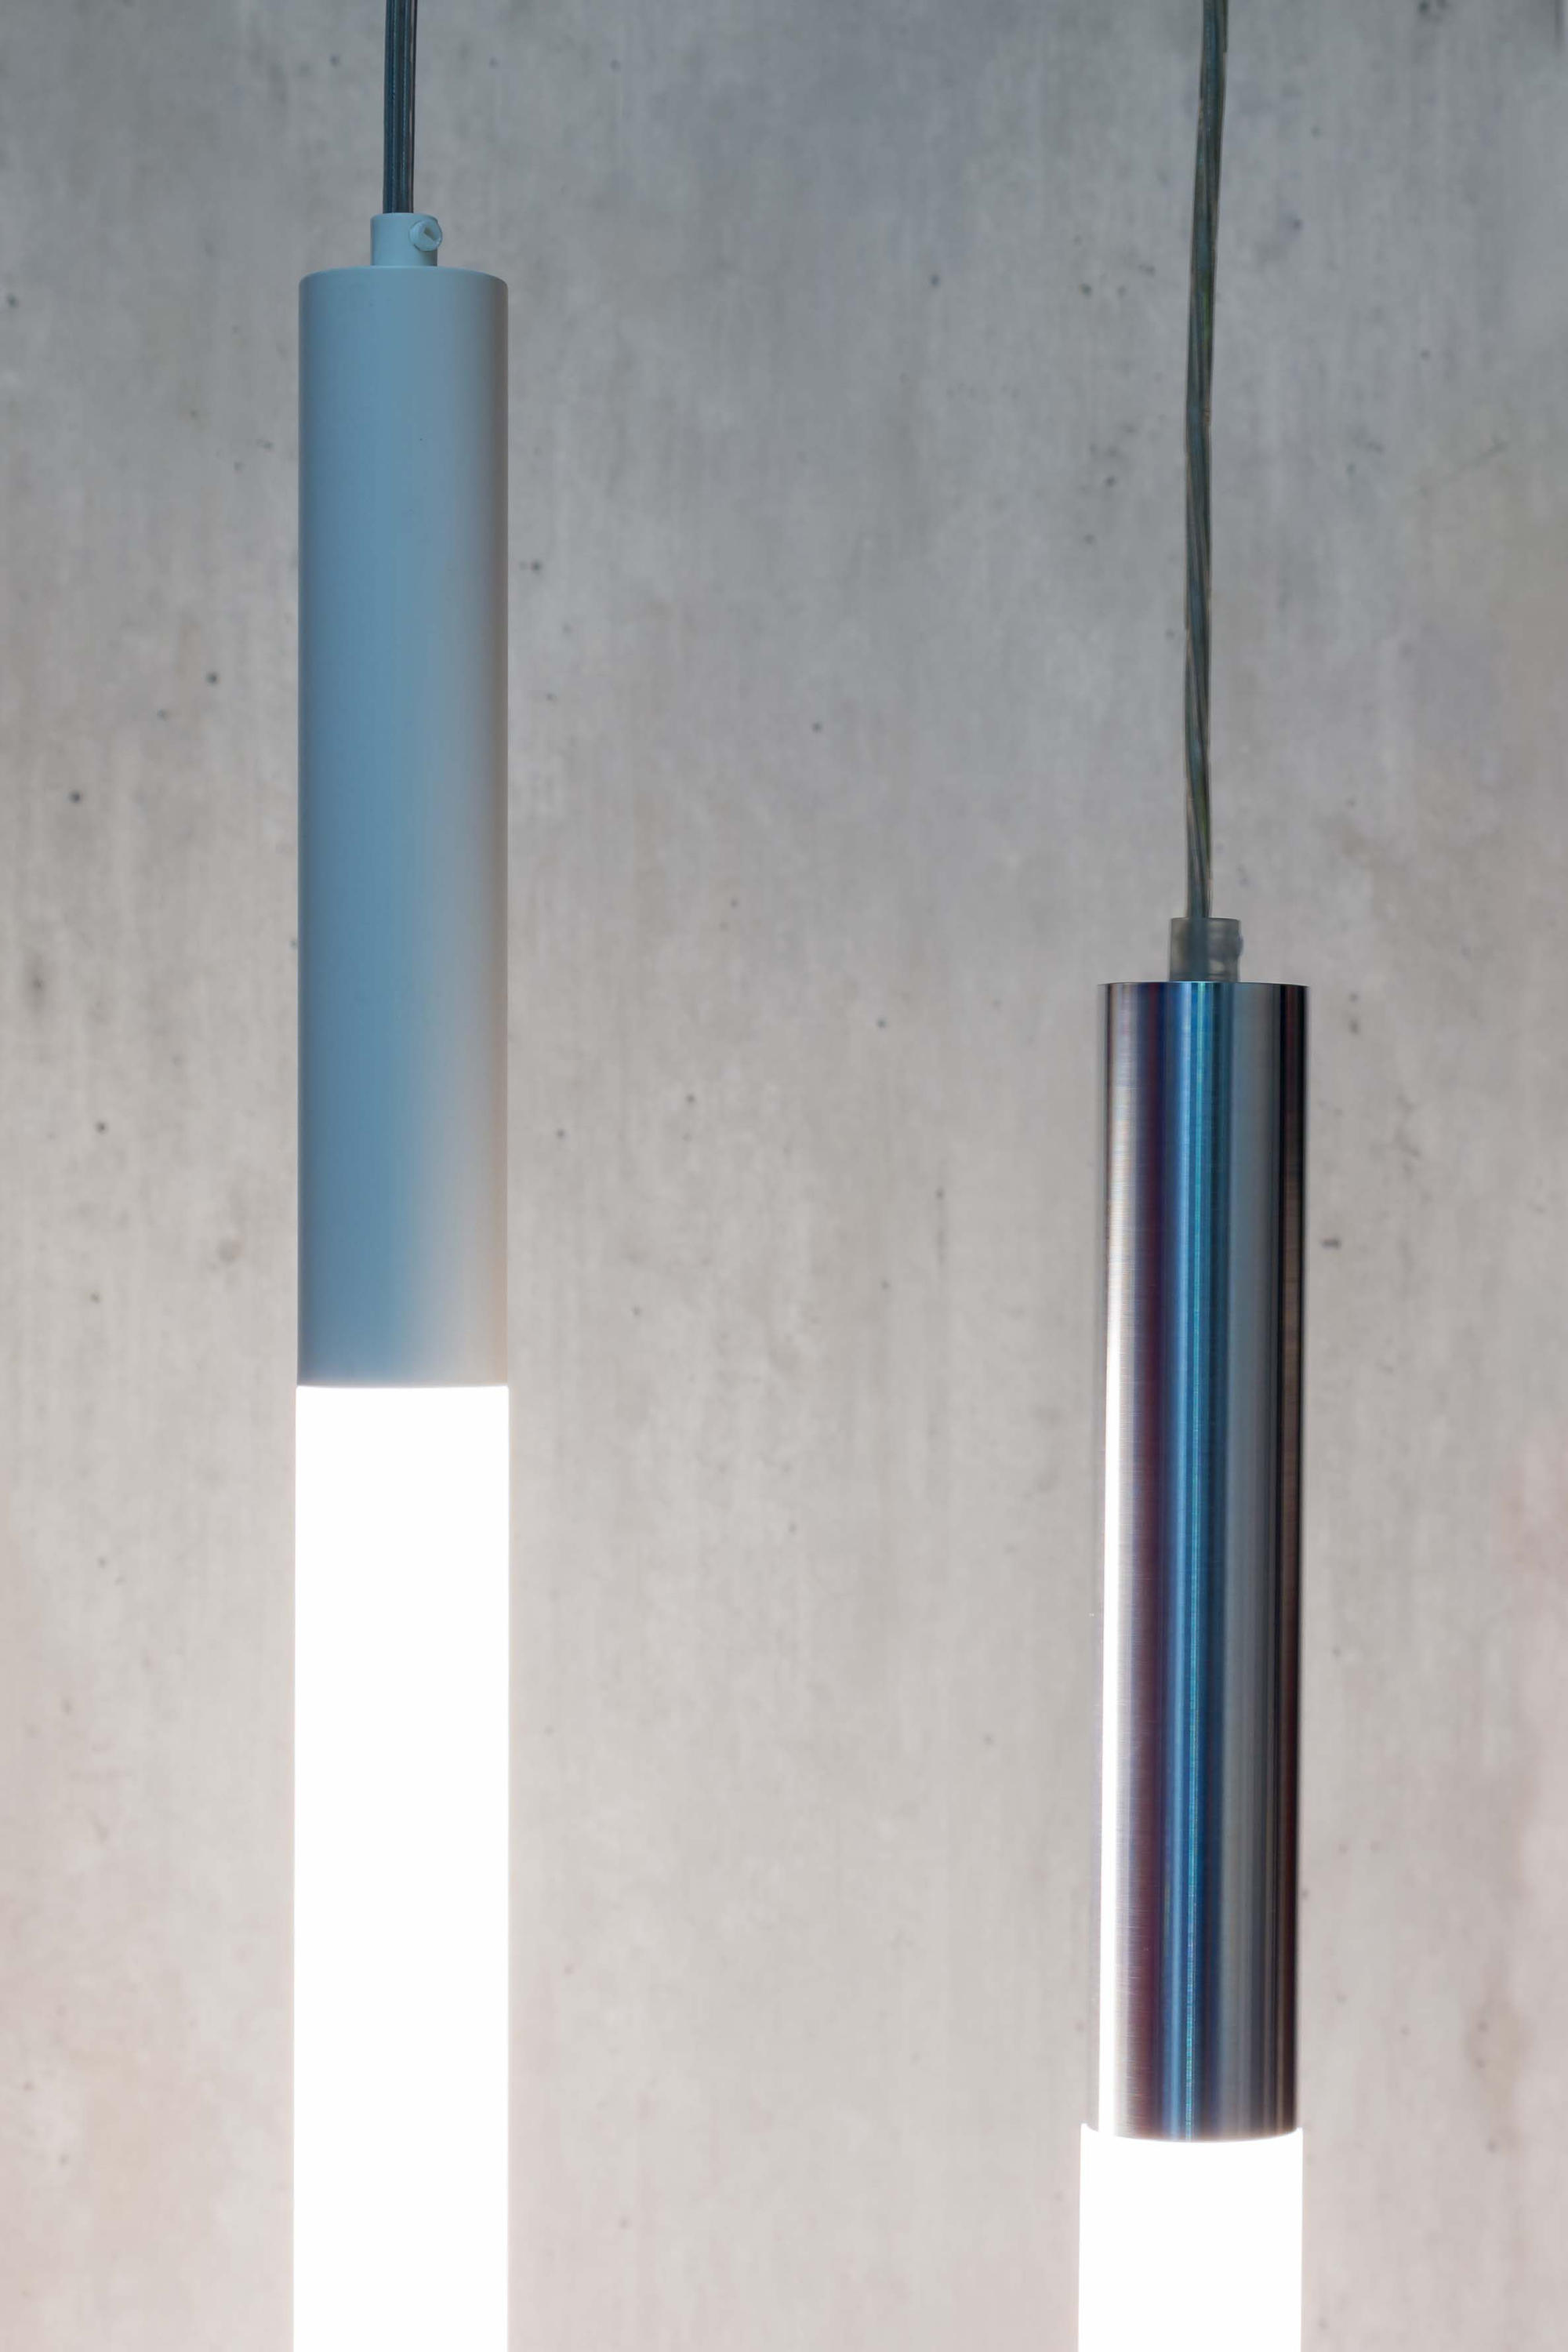 Solo Tube Suspended Lights From Archxx Architonic